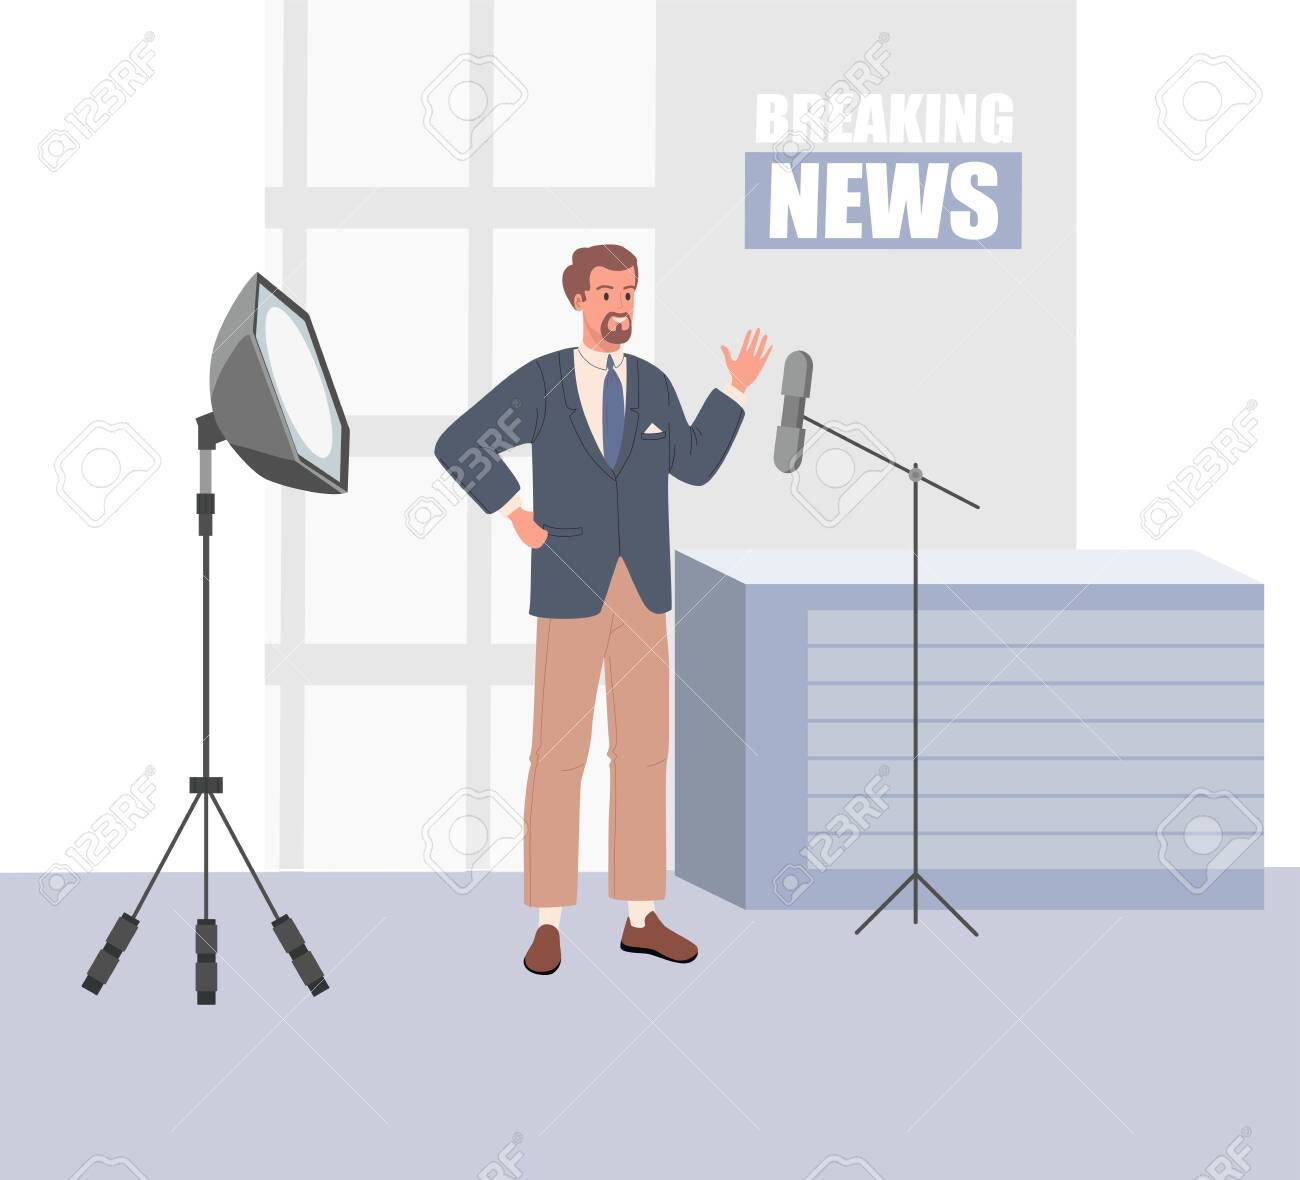 TV news studio with broadcaster. Vector illustration - 153582183